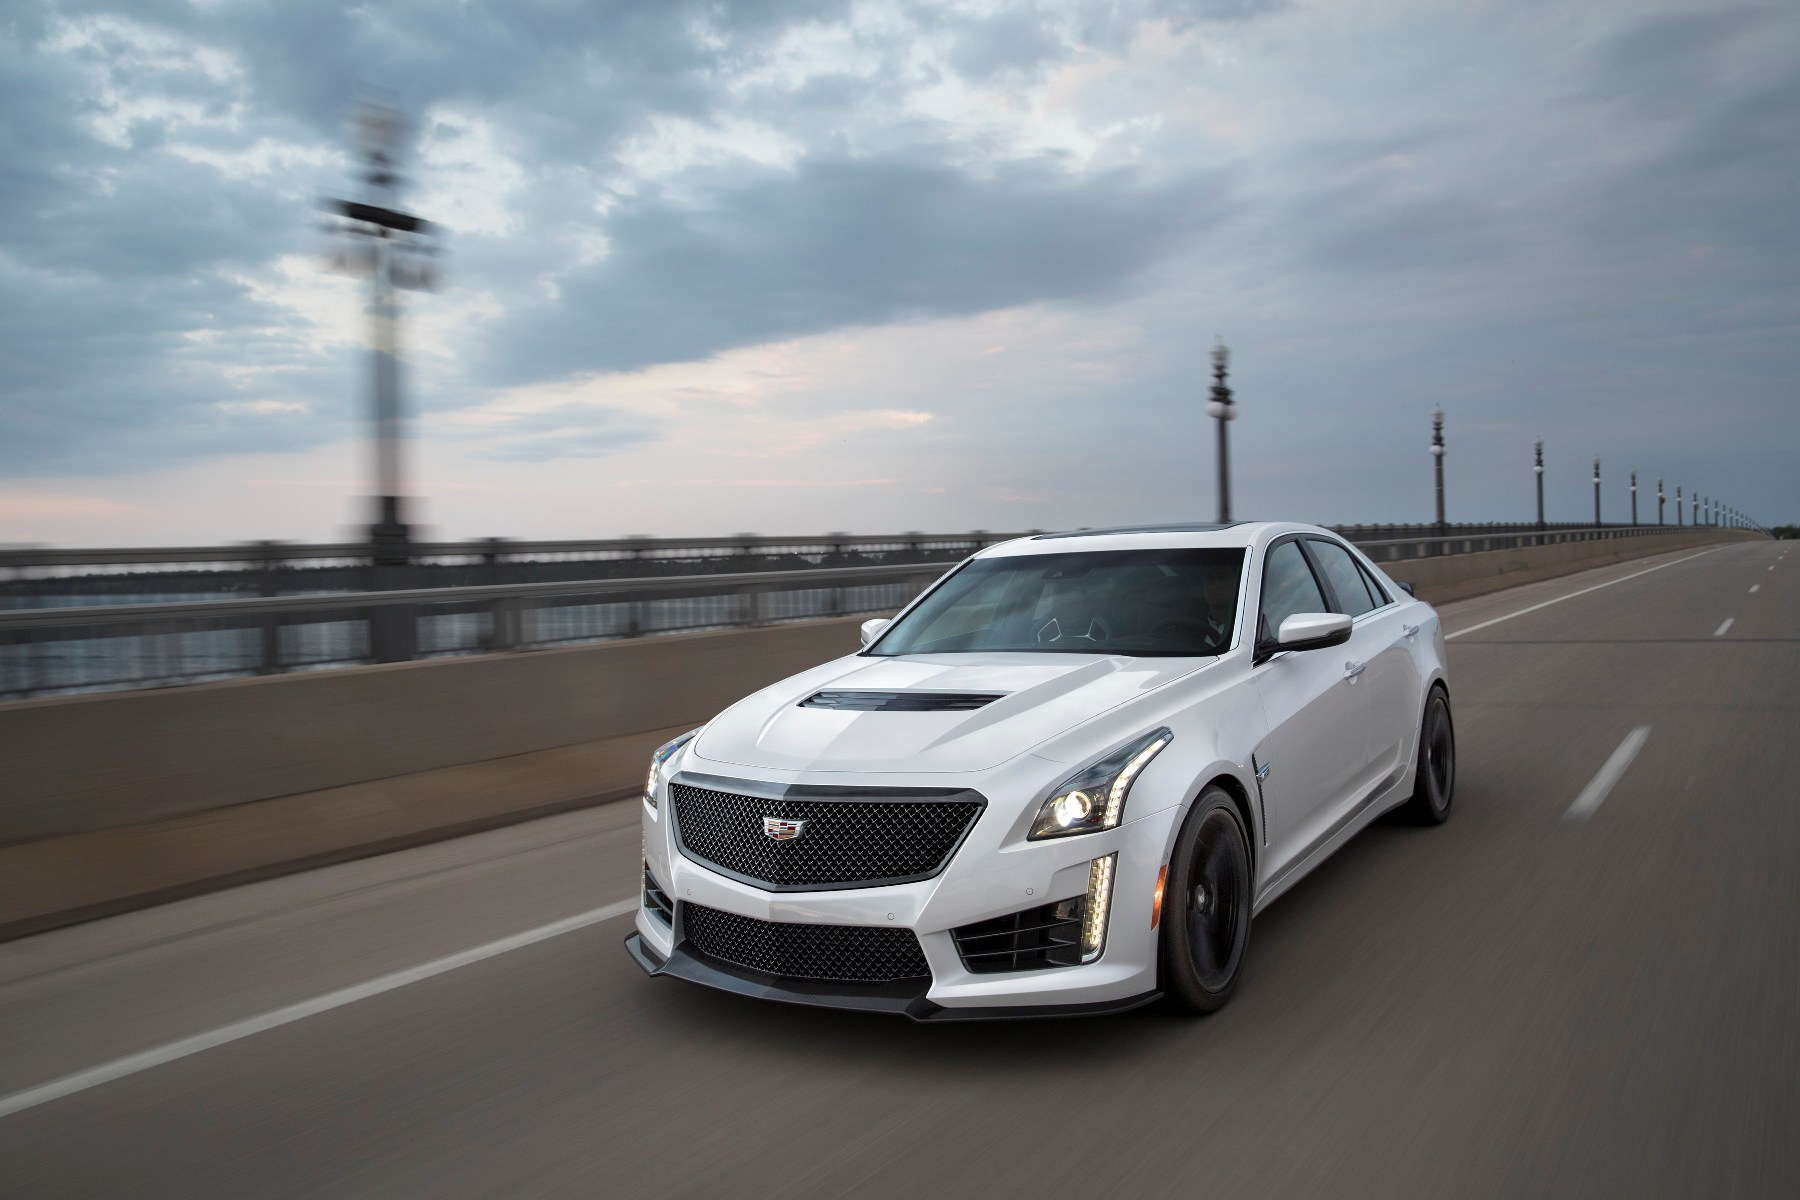 2018 Cadillac Cts V Overview The News Wheel